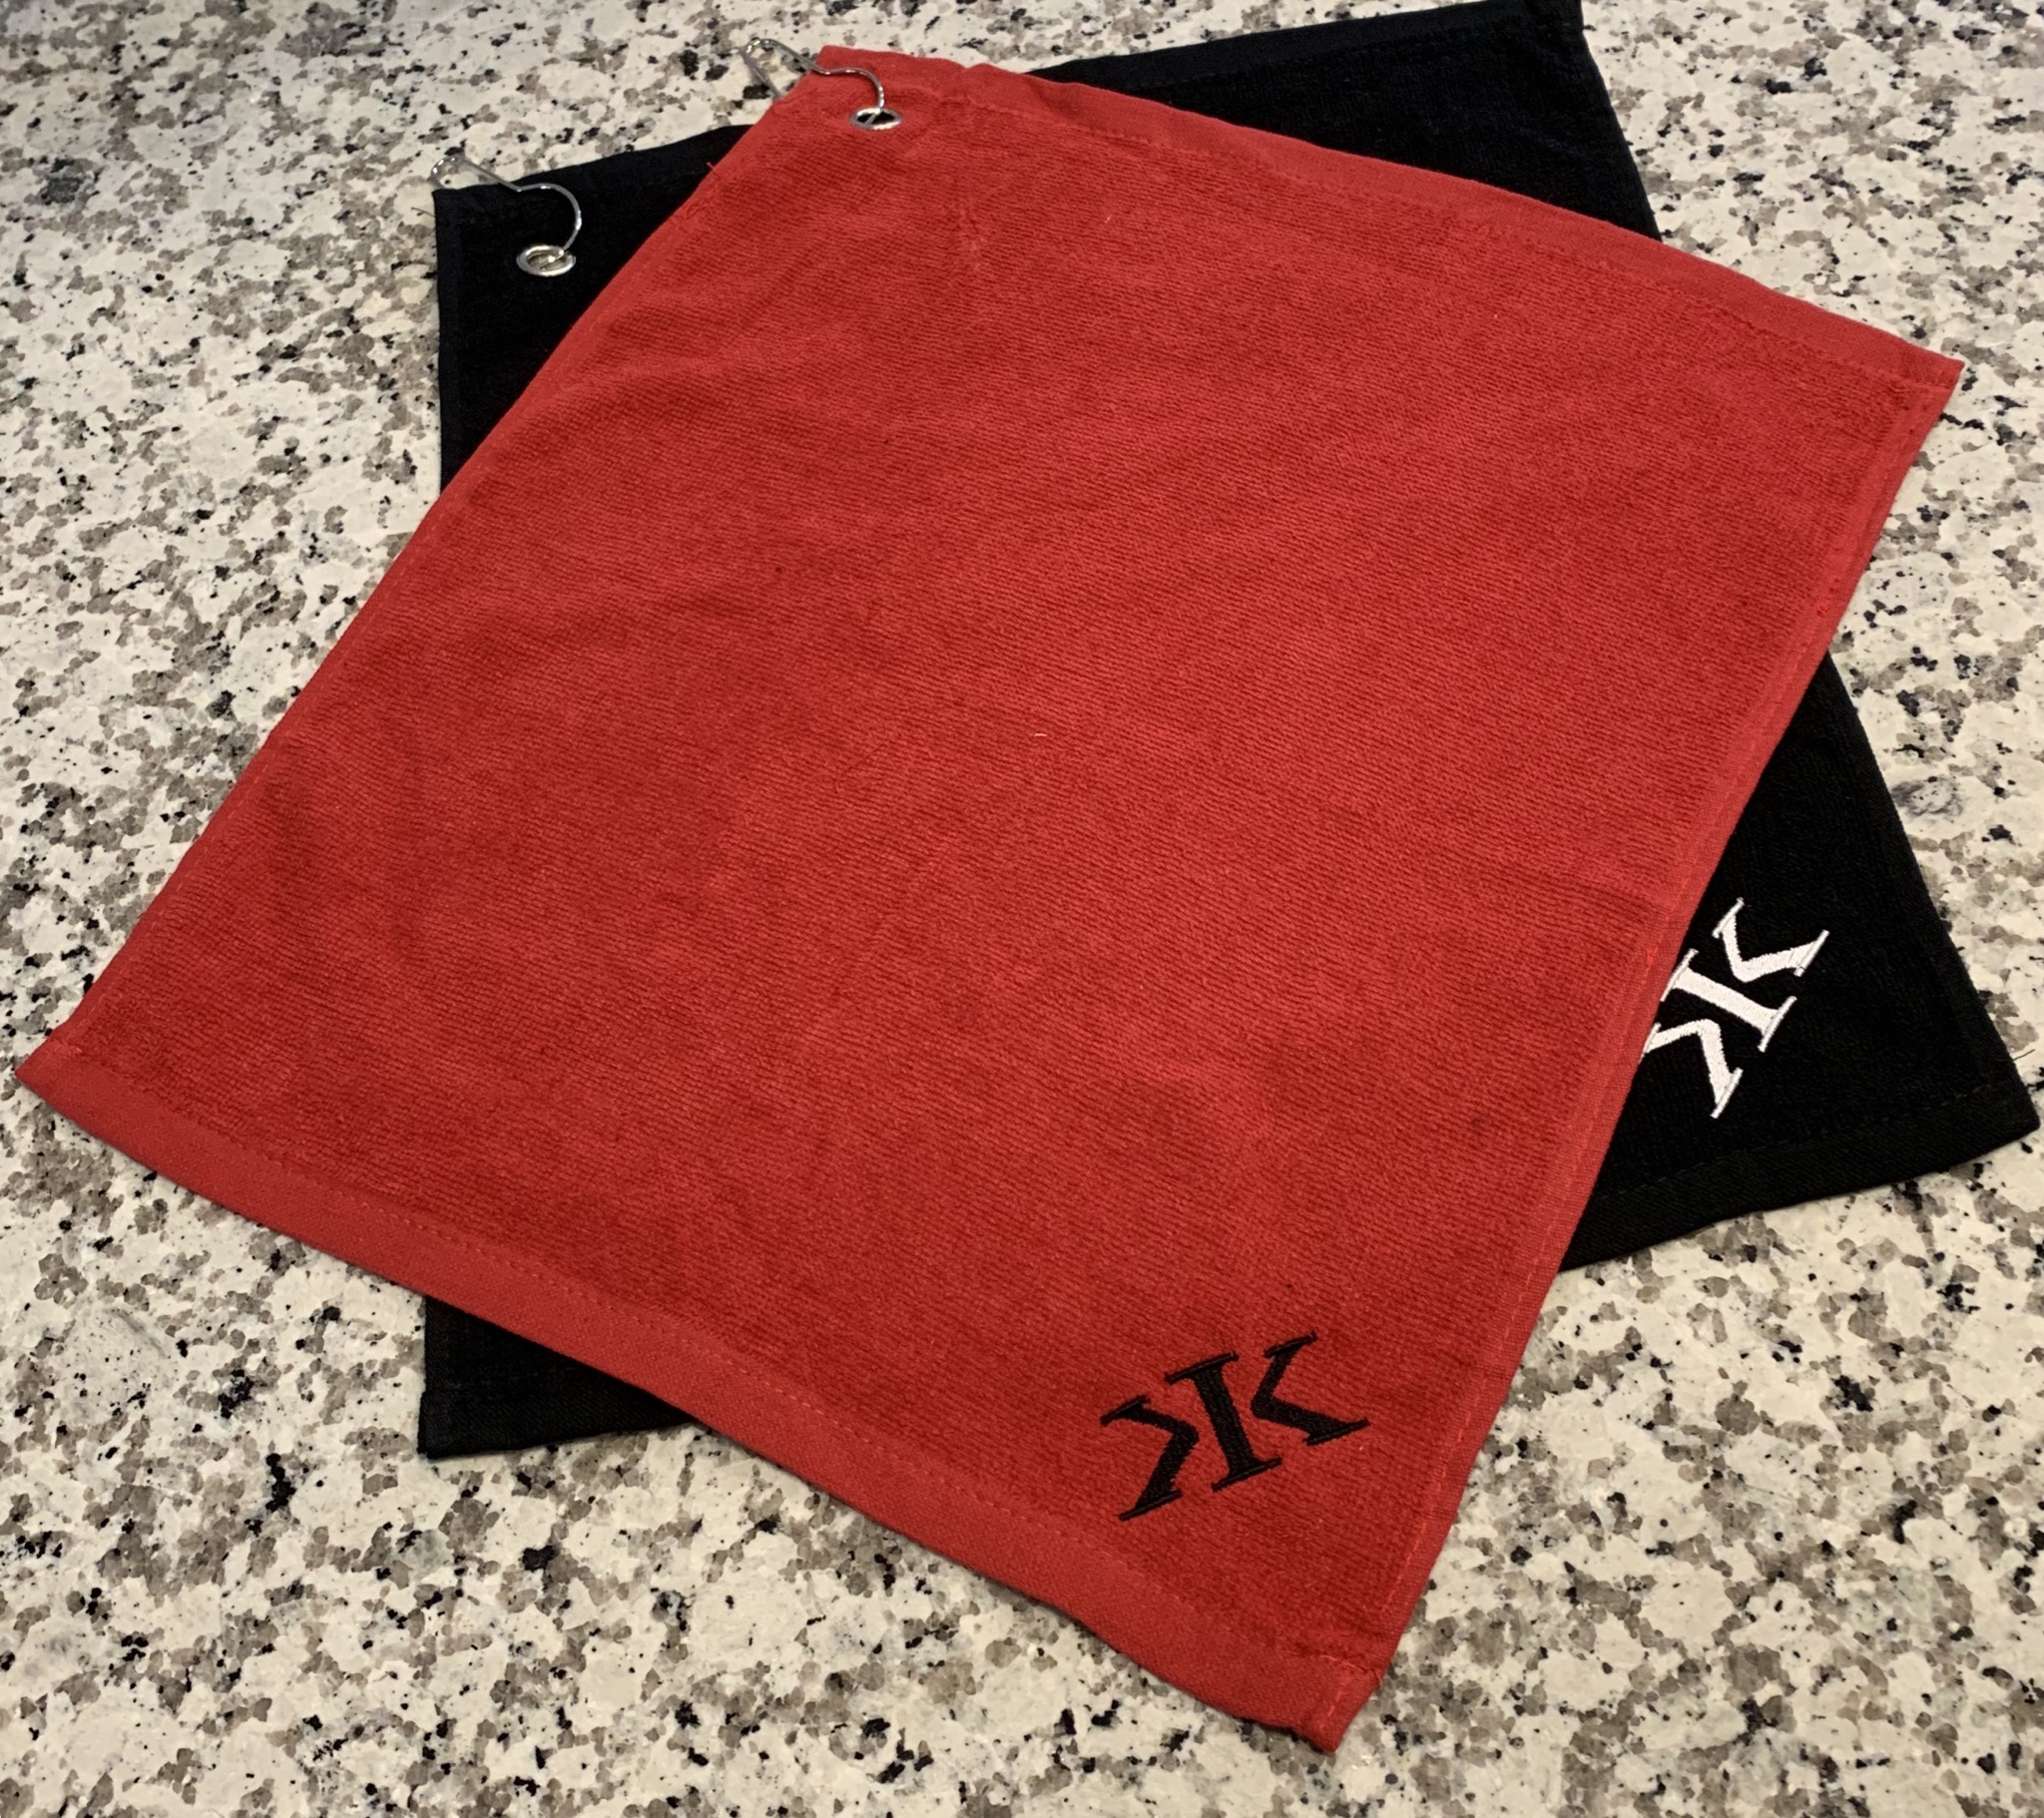 K.I.K Golf Towels